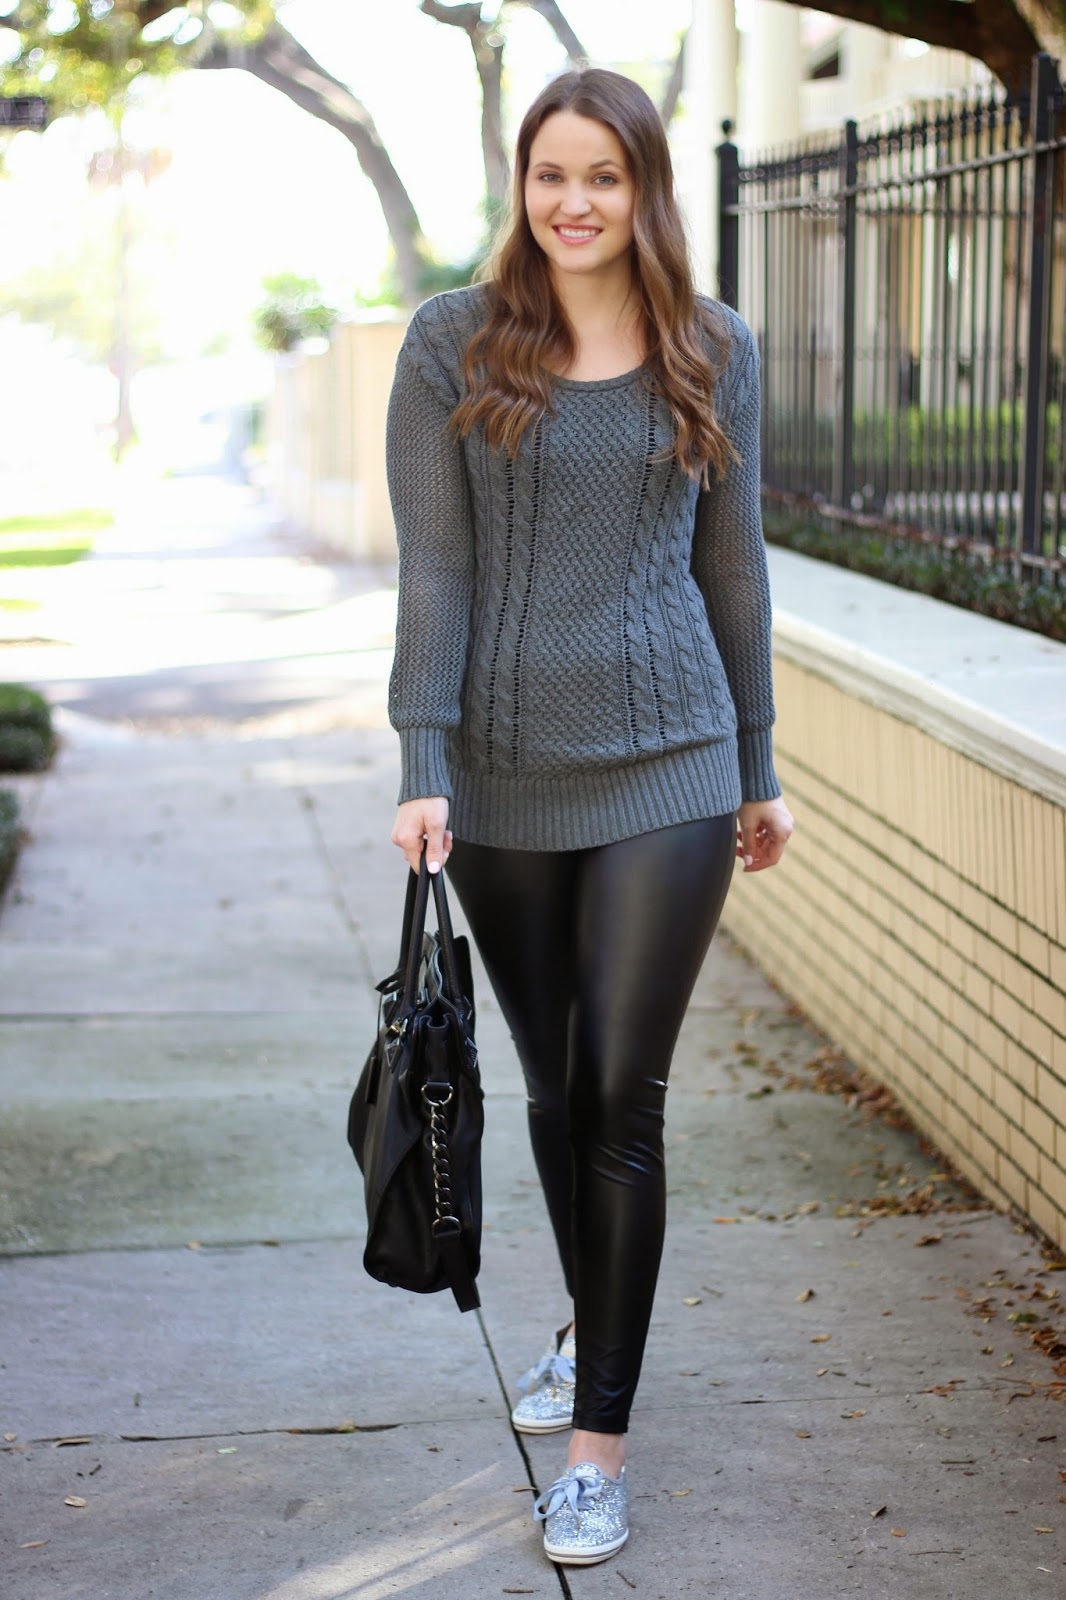 Cable Knit And Faux Leather Kelly Elizabeth Style